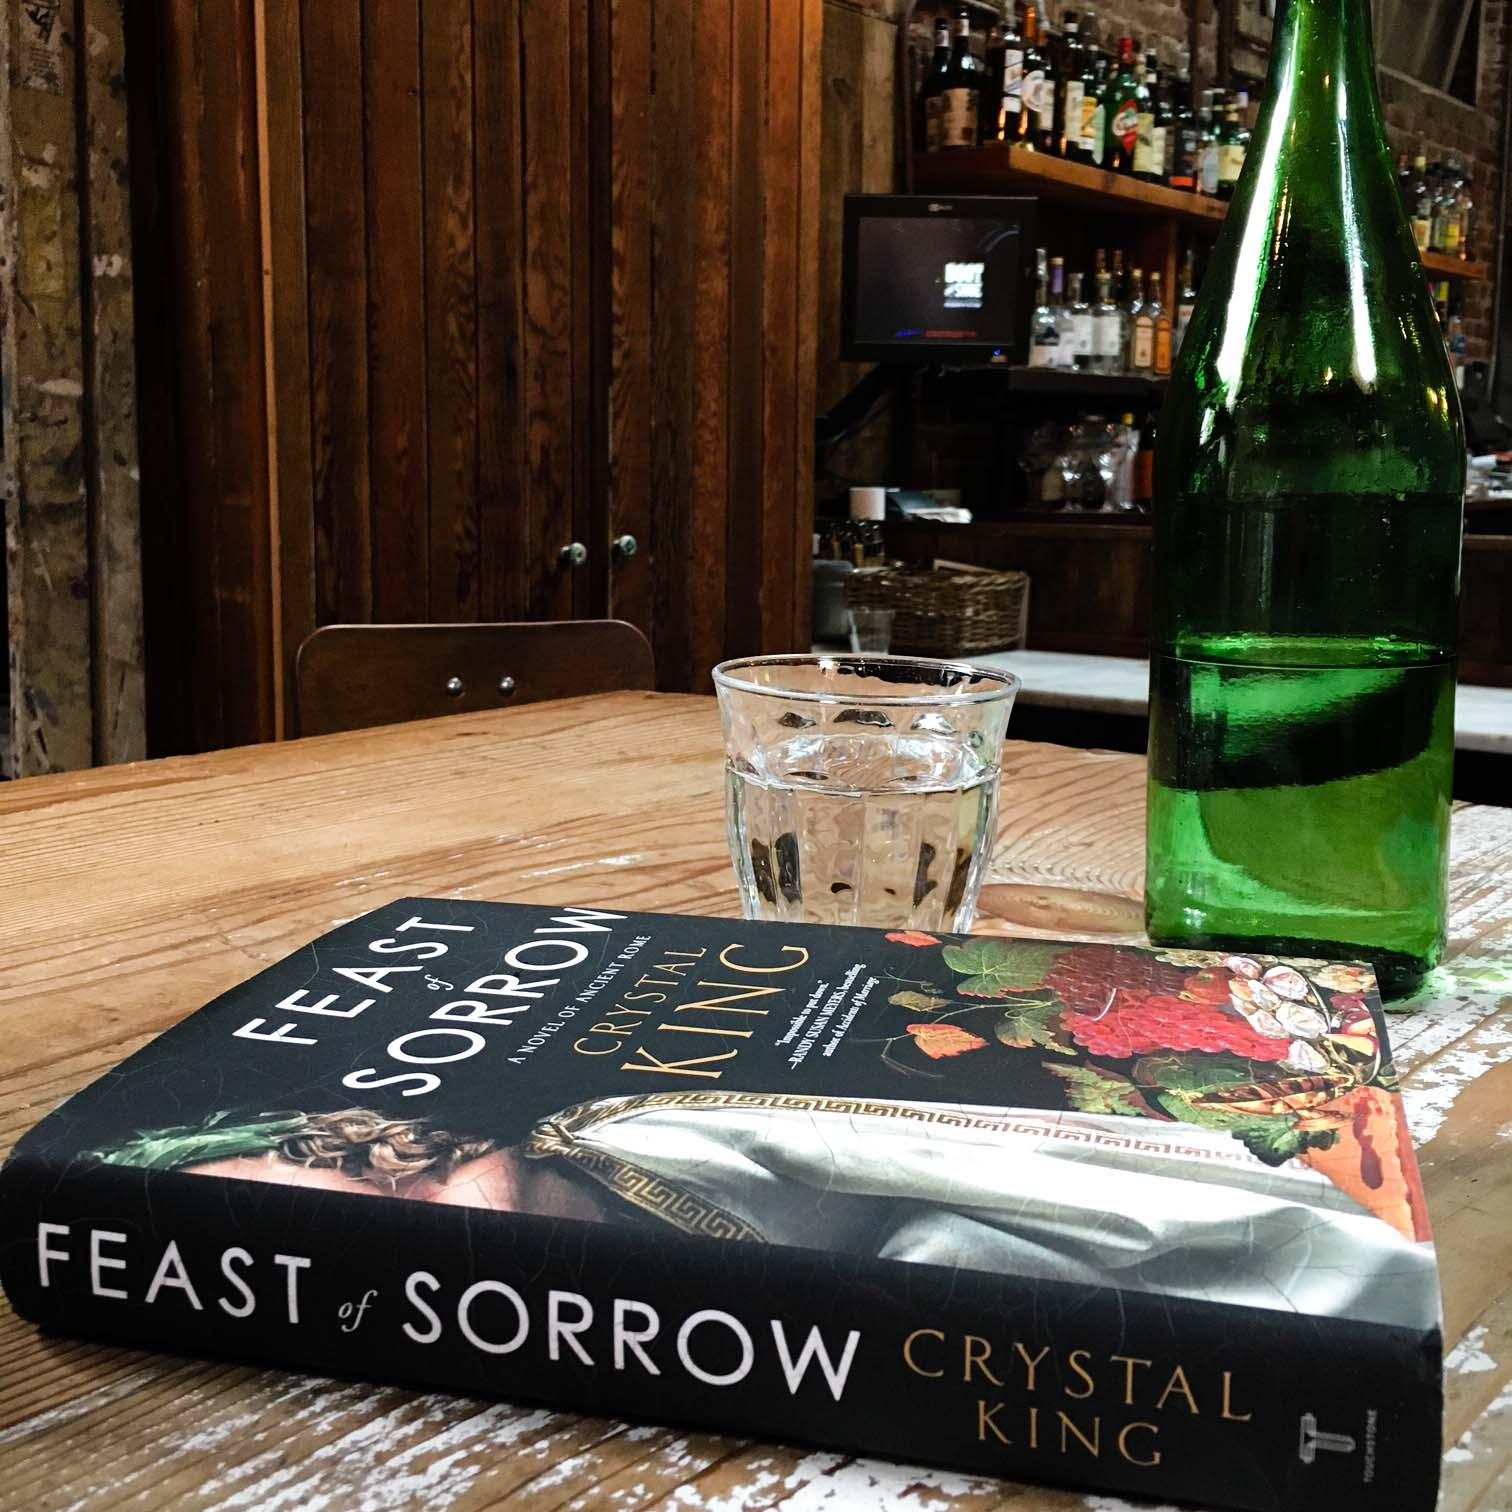 For lovers of historical fiction, Feast of Sorrow is a timeless tale set in ancient Rome.